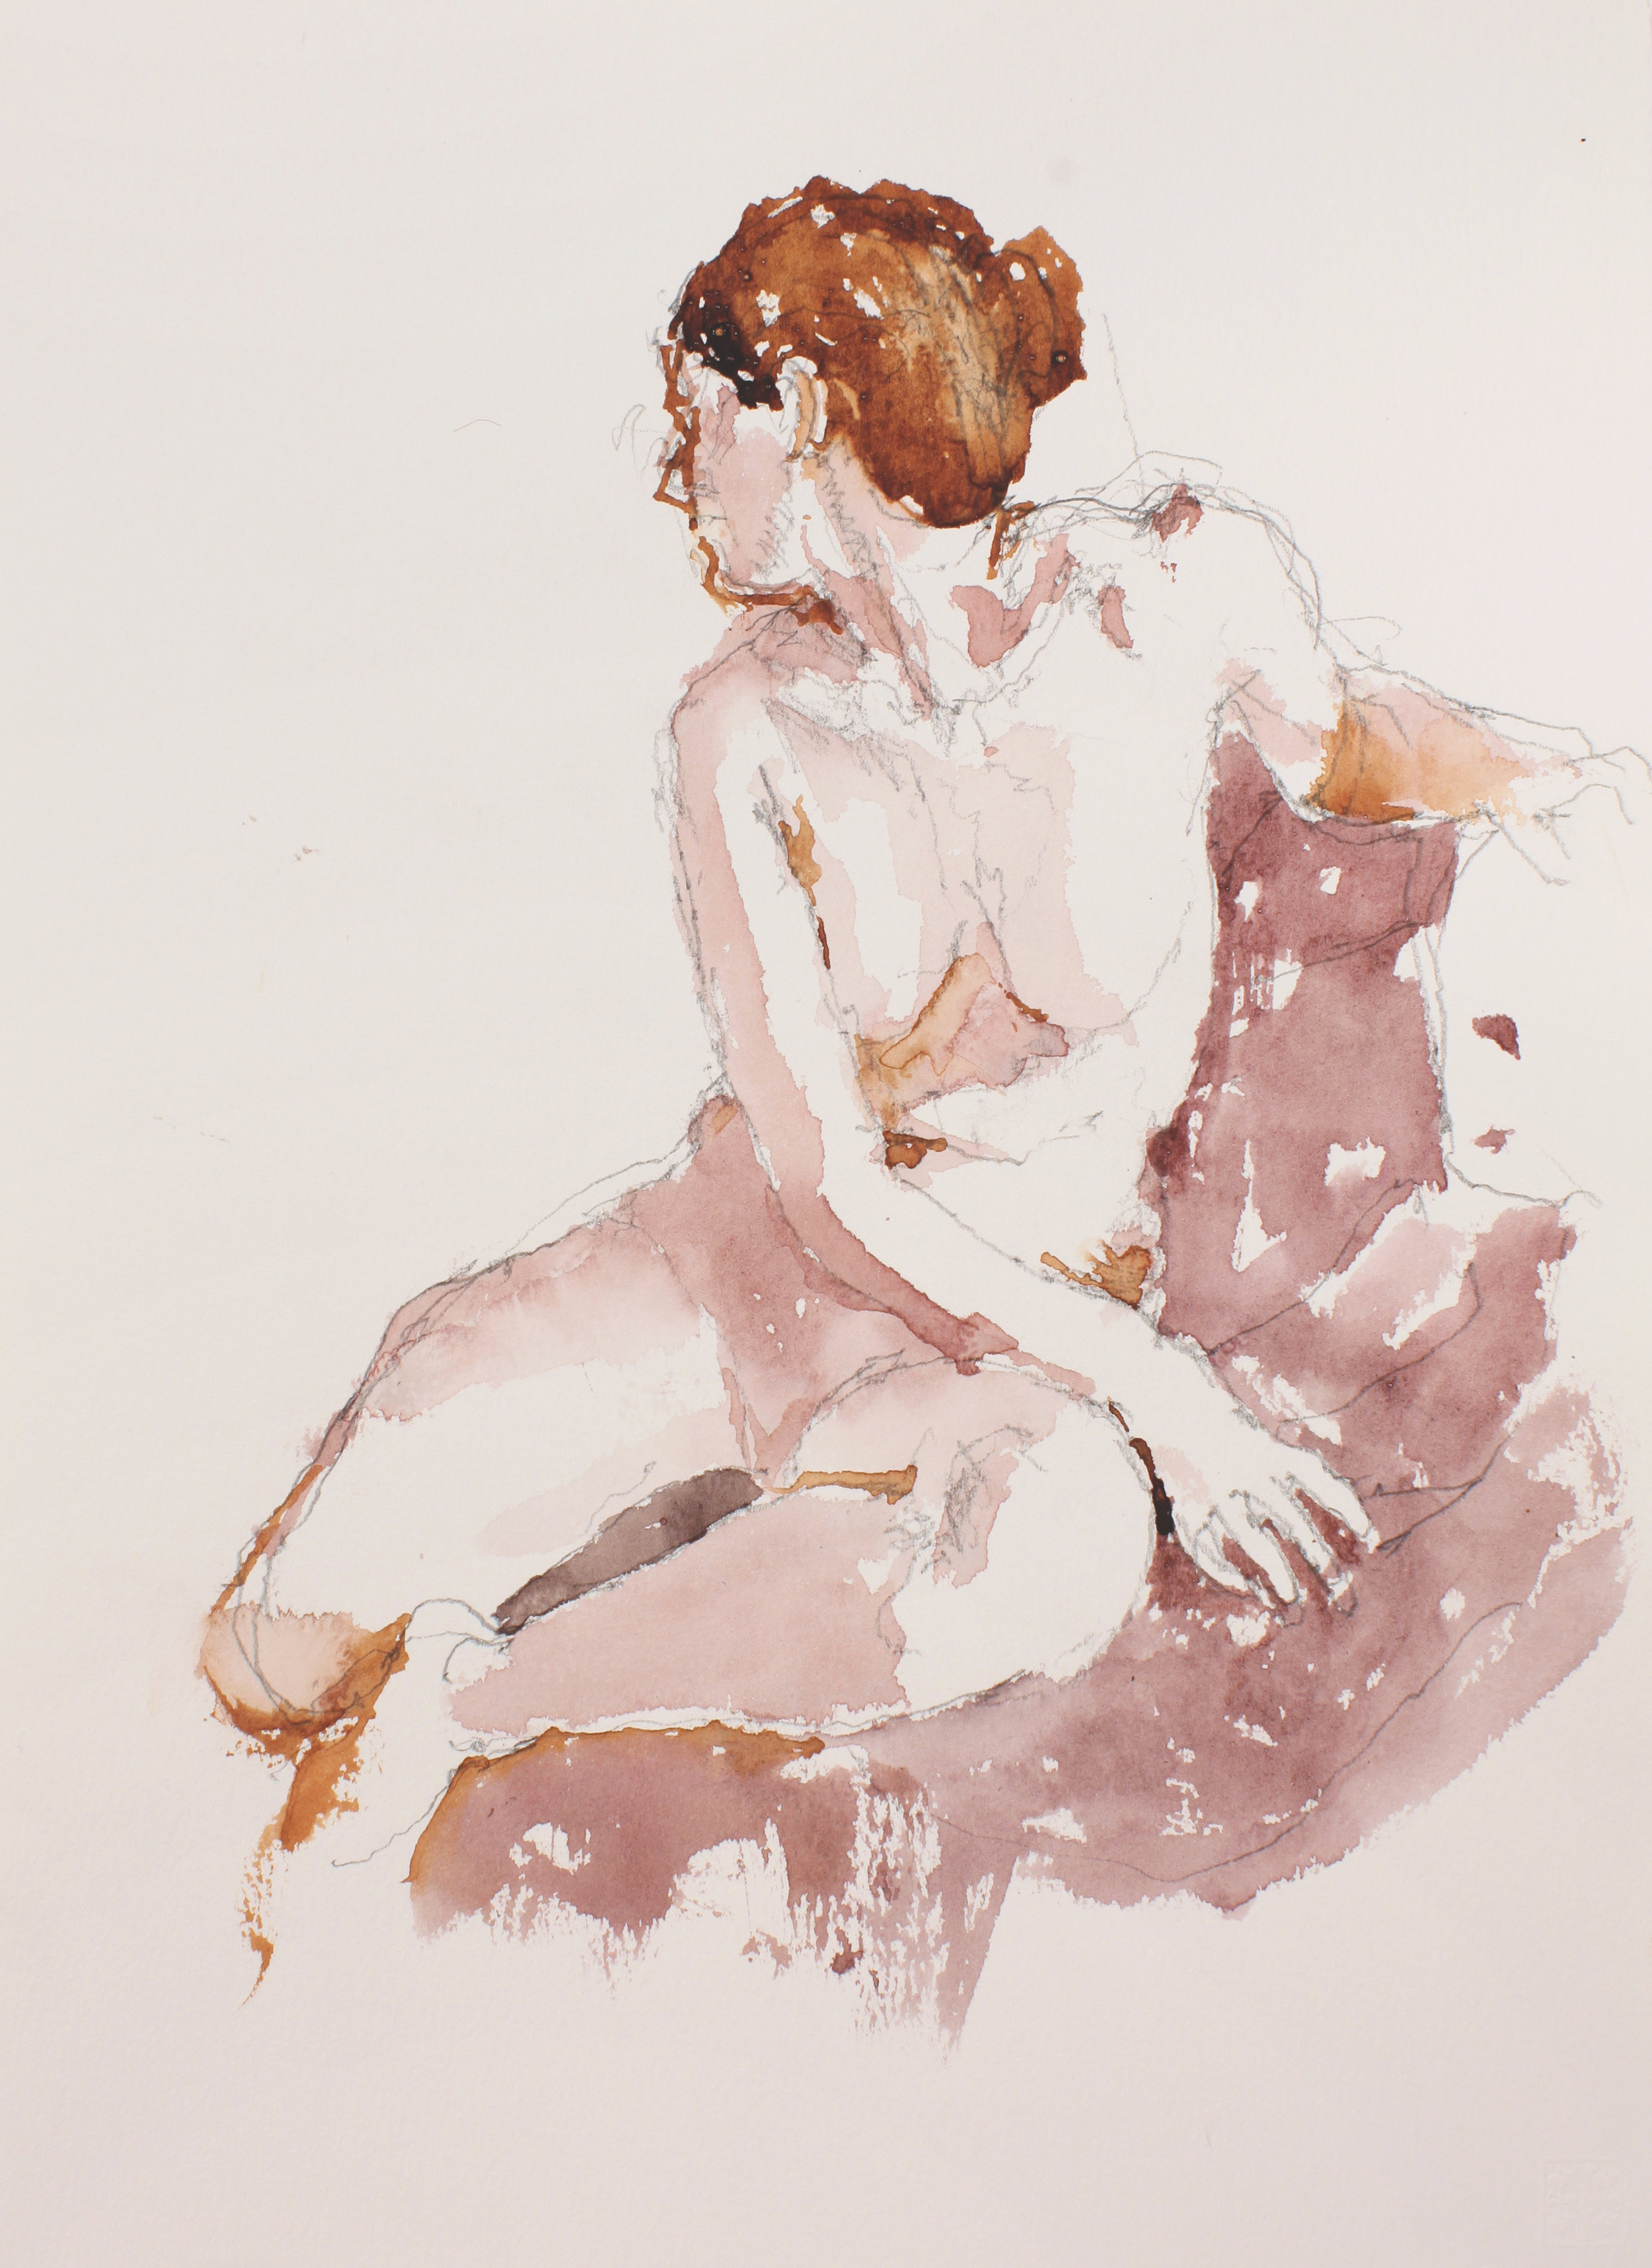 2007_Seated_Nude_with_Turned_Head_watercolour_and_pencil_on_paper_15x11in_WPF221.jpg